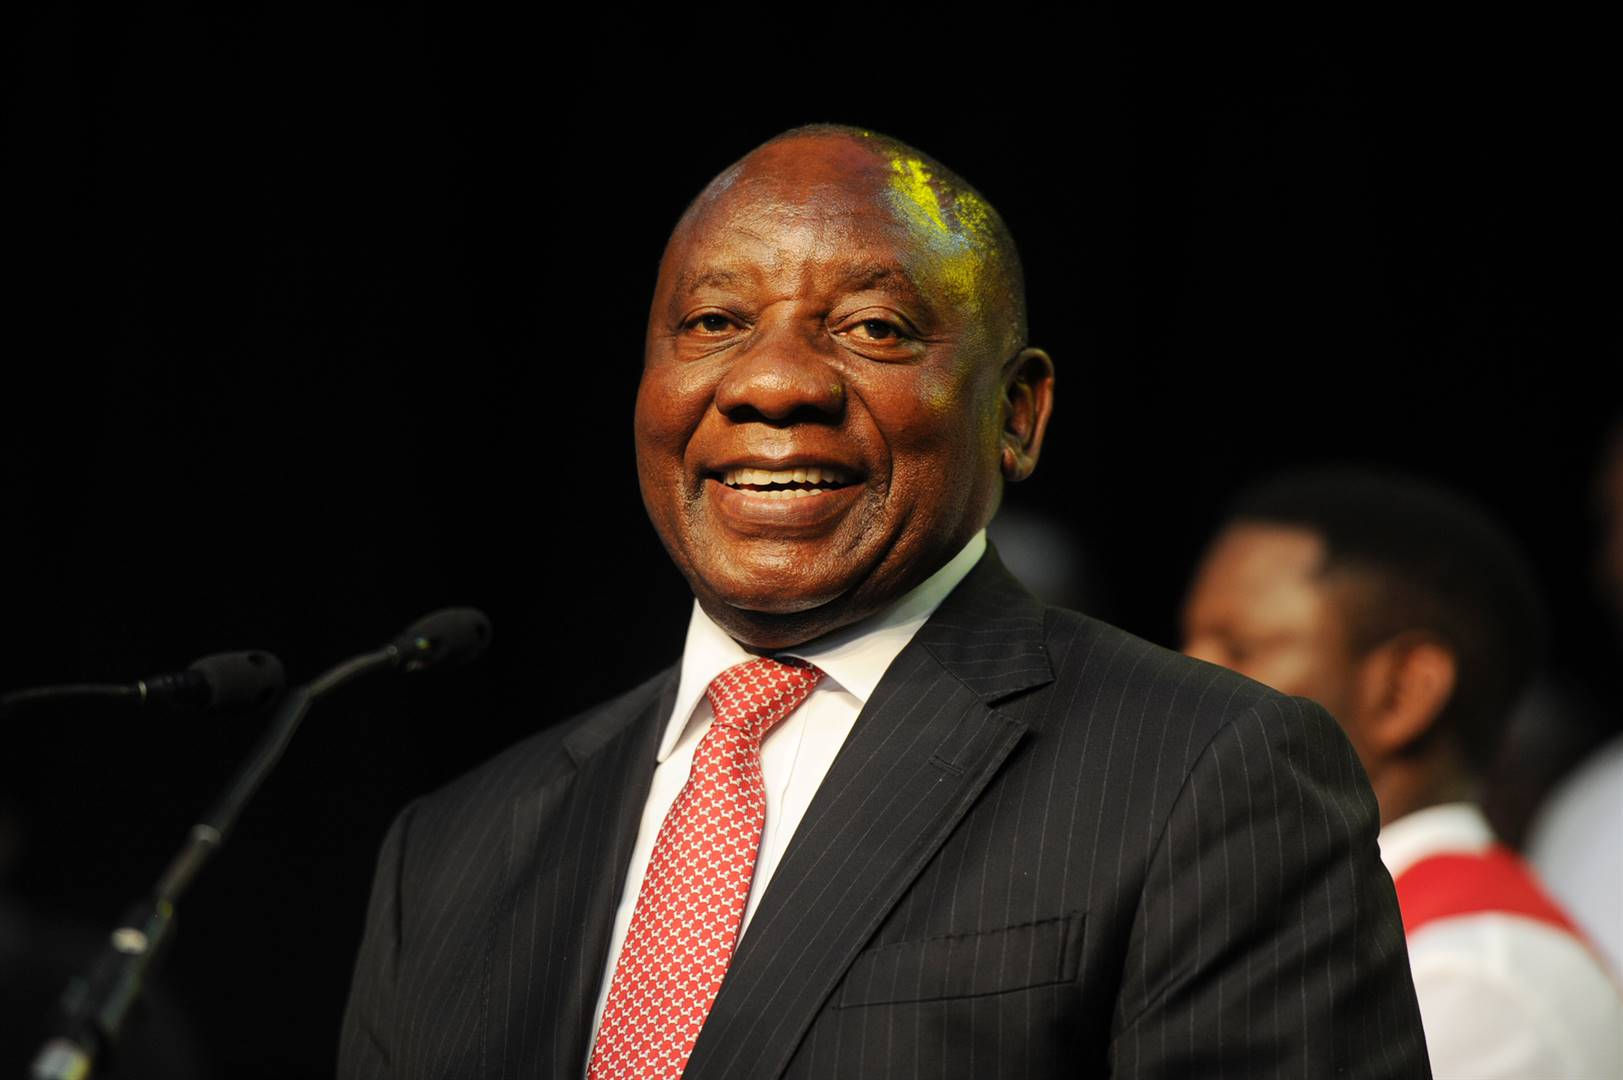 'Party funding law will end corruption' – Cyril Ramaphosa | Citypress - News24